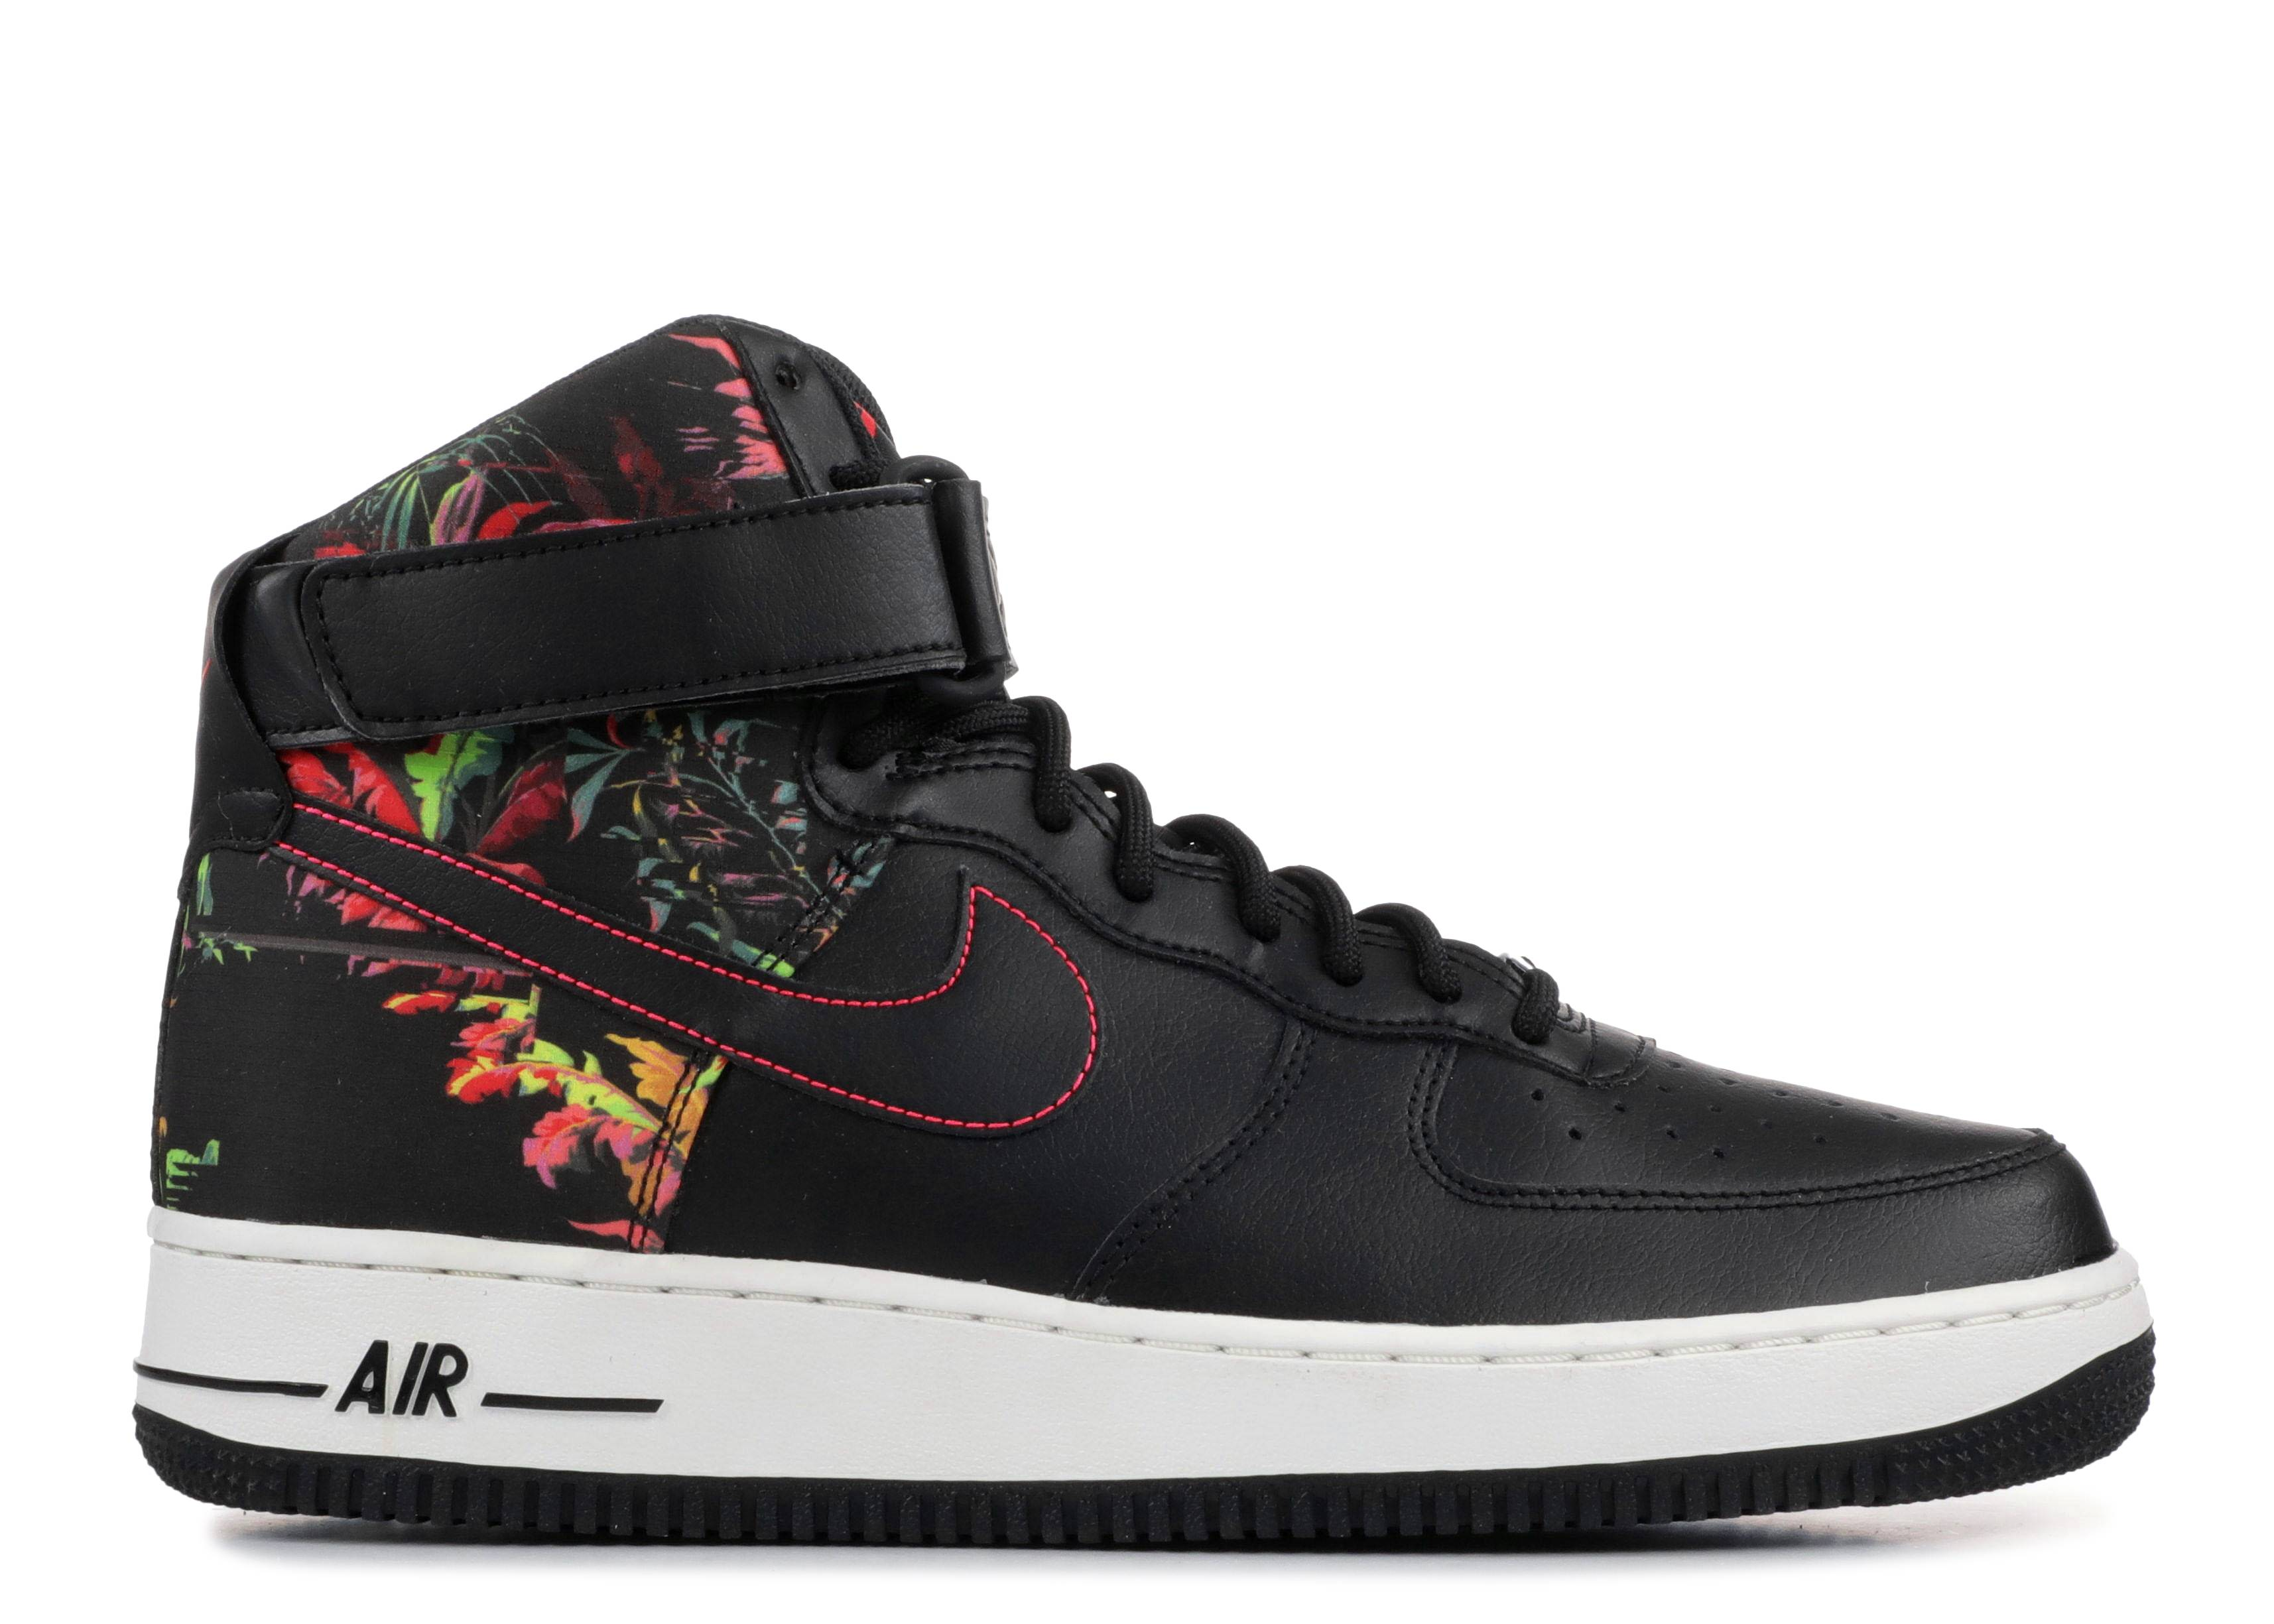 promo code 0f6f7 9ae79 nike. Air Force 1 High 07 lv8